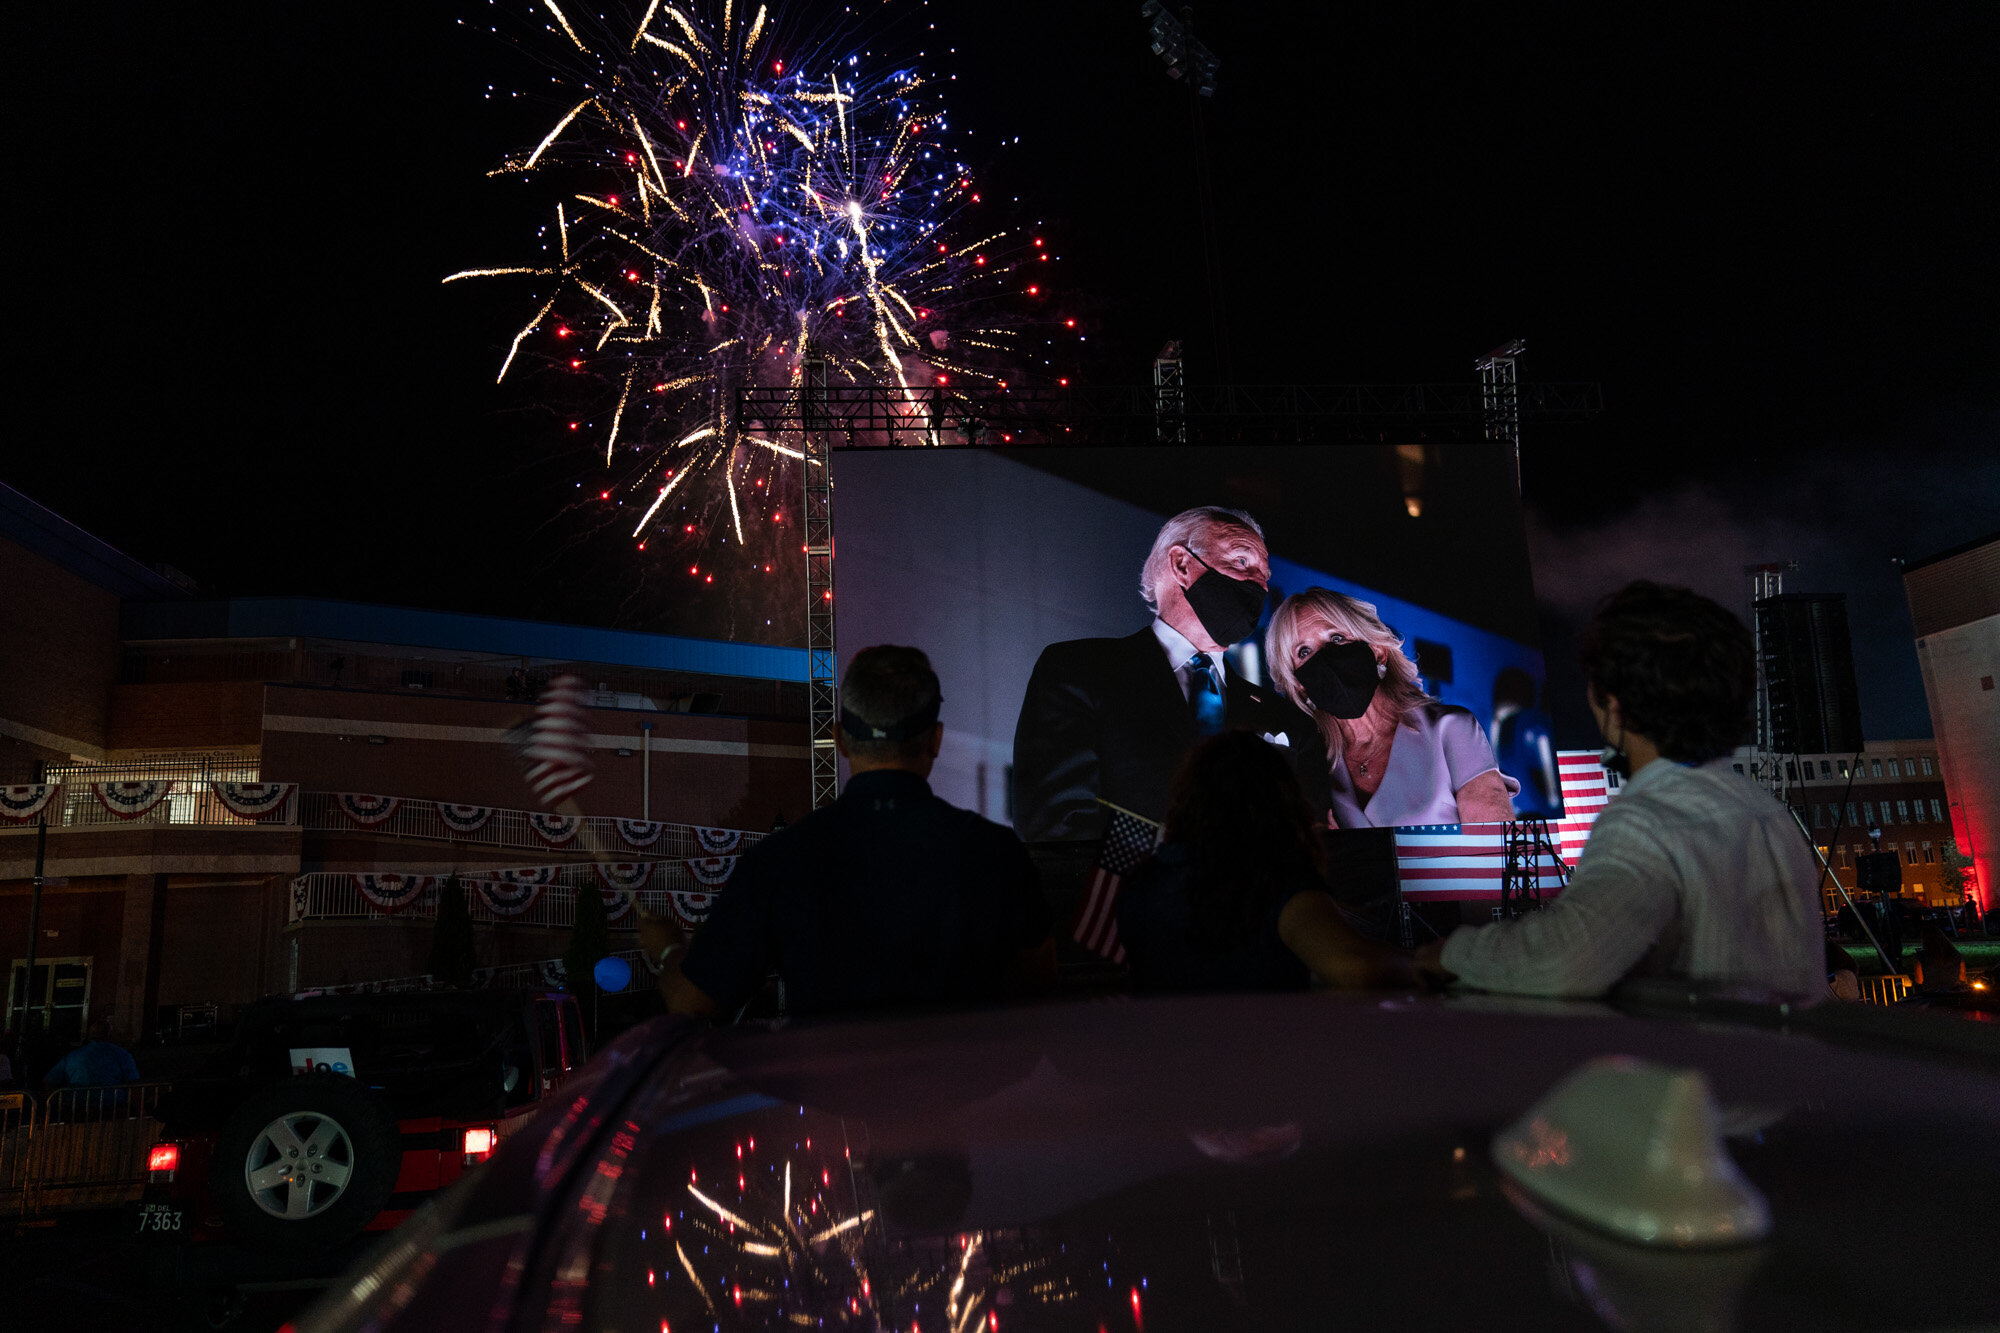 Supporters cheer from their cars as Democratic presidential candidate former Vice President Joe Biden and his wife Jill Biden appear on a huge monitor and fireworks light up the night sky on the fourth day of the Democratic National Convention in Wilmington, Del., on Aug. 20, 2020. (AP Photo/Carolyn Kaster)